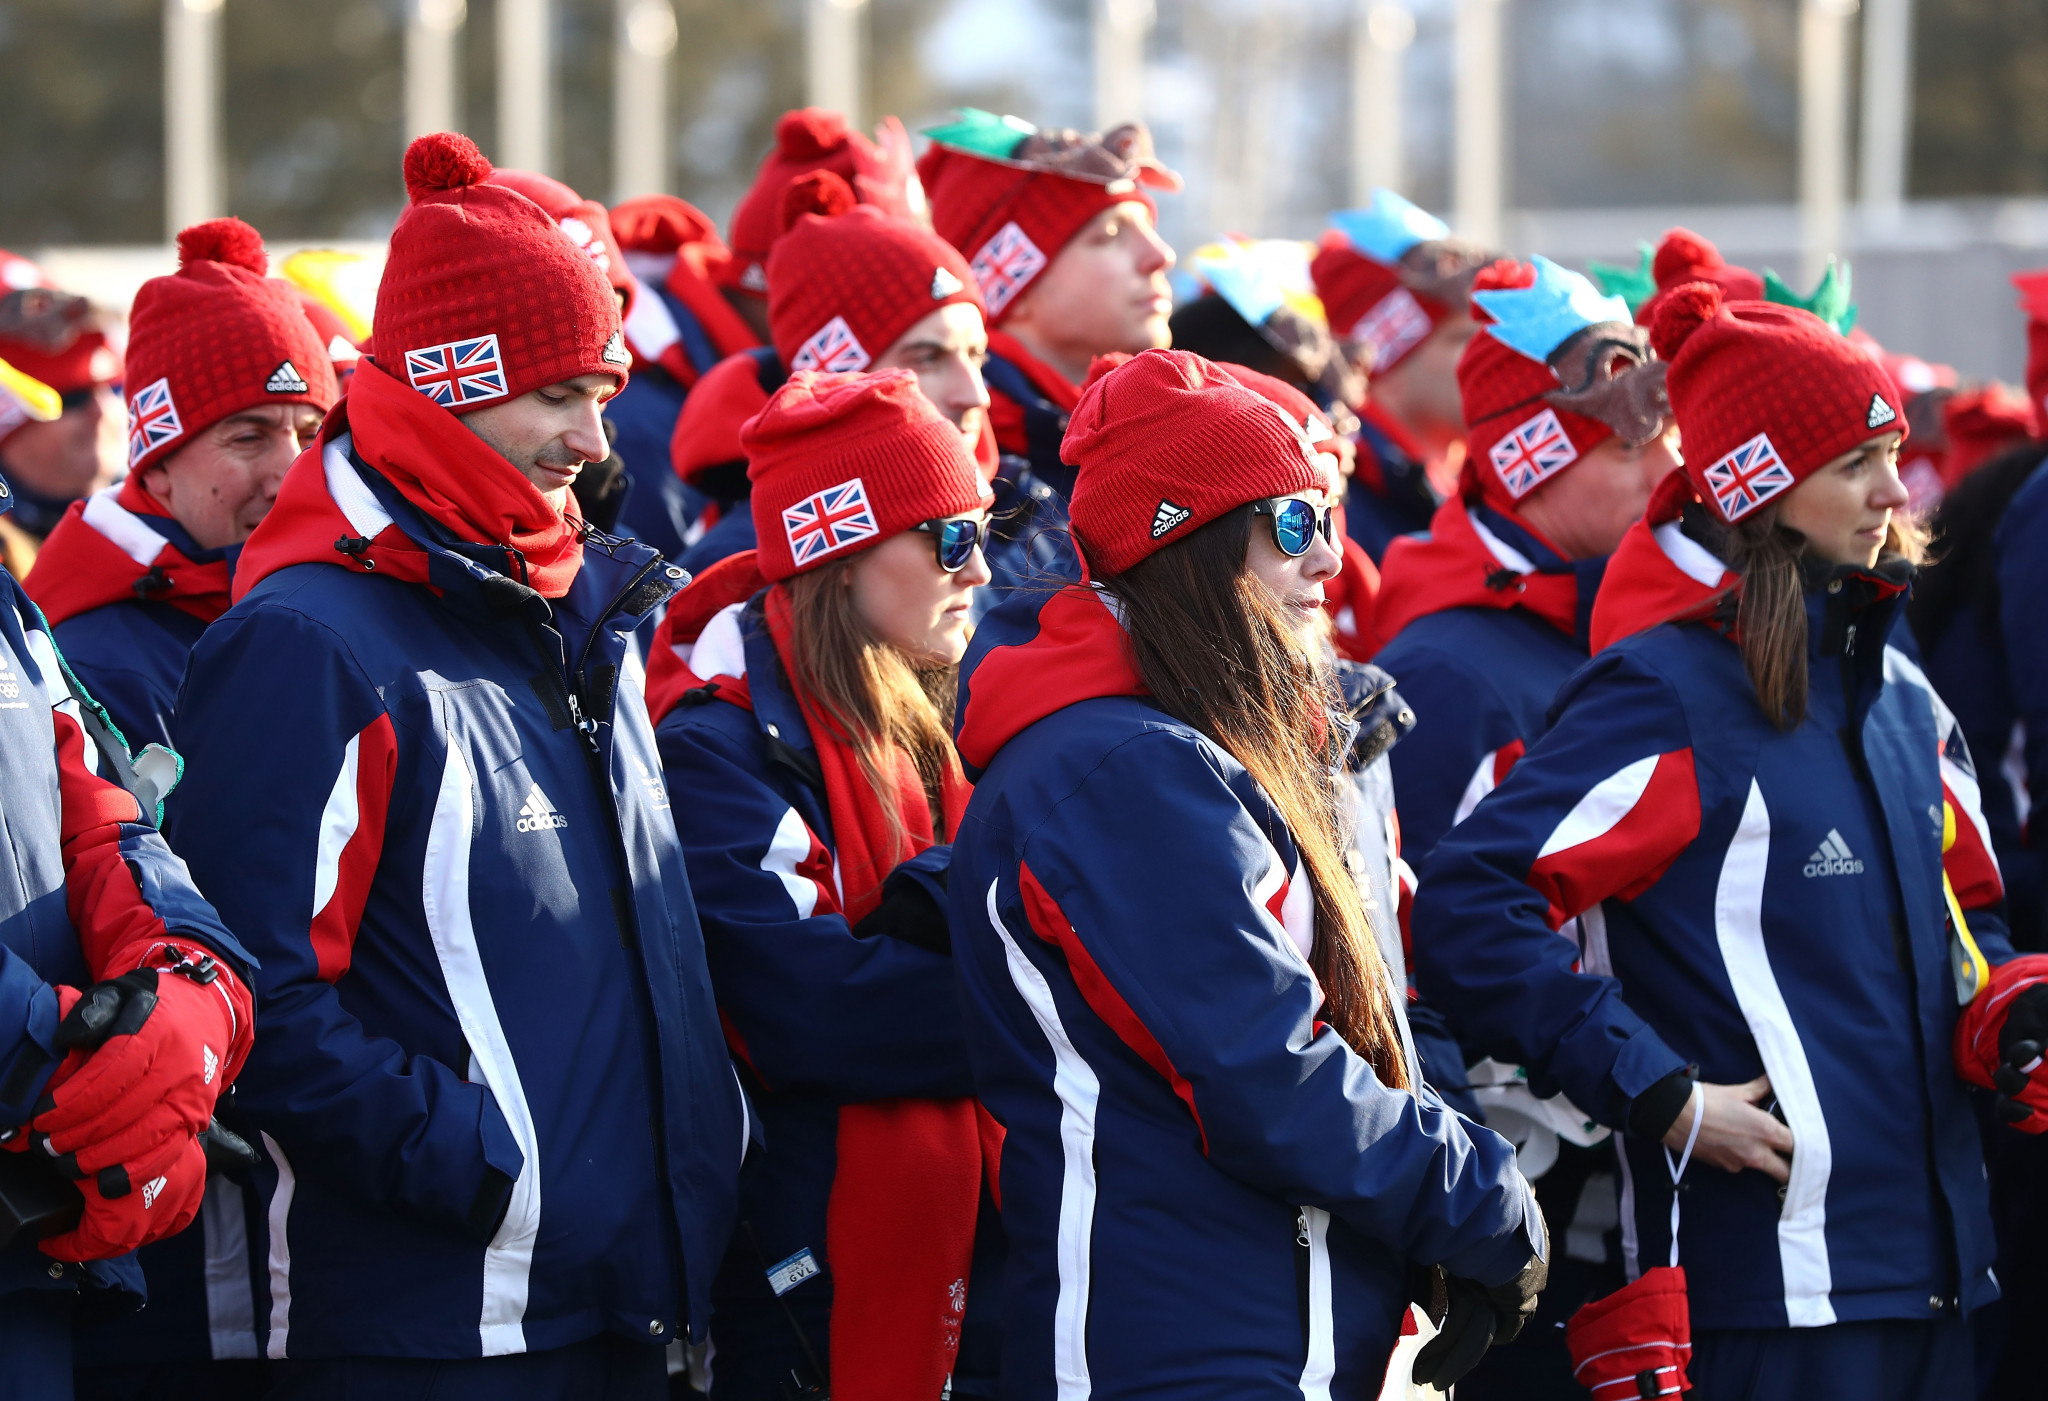 Each of the 59 British athletes competing in the Winter Olympics at Pyeongchang 2018 have been drugs test tested and taken part in the